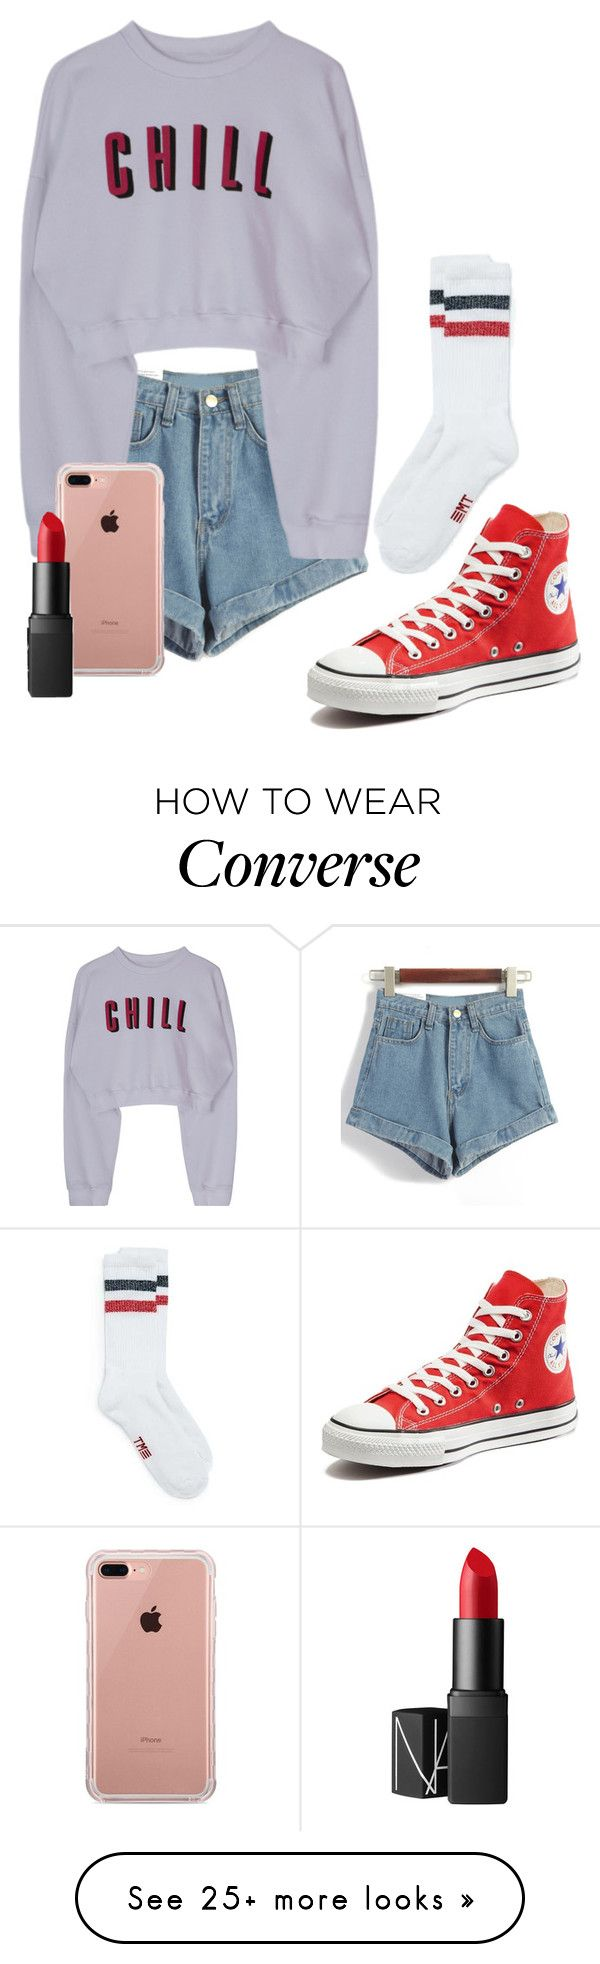 """Untitled #1467"" by penny44224 on Polyvore featuring Converse, Belkin and NARS Cosmetics"